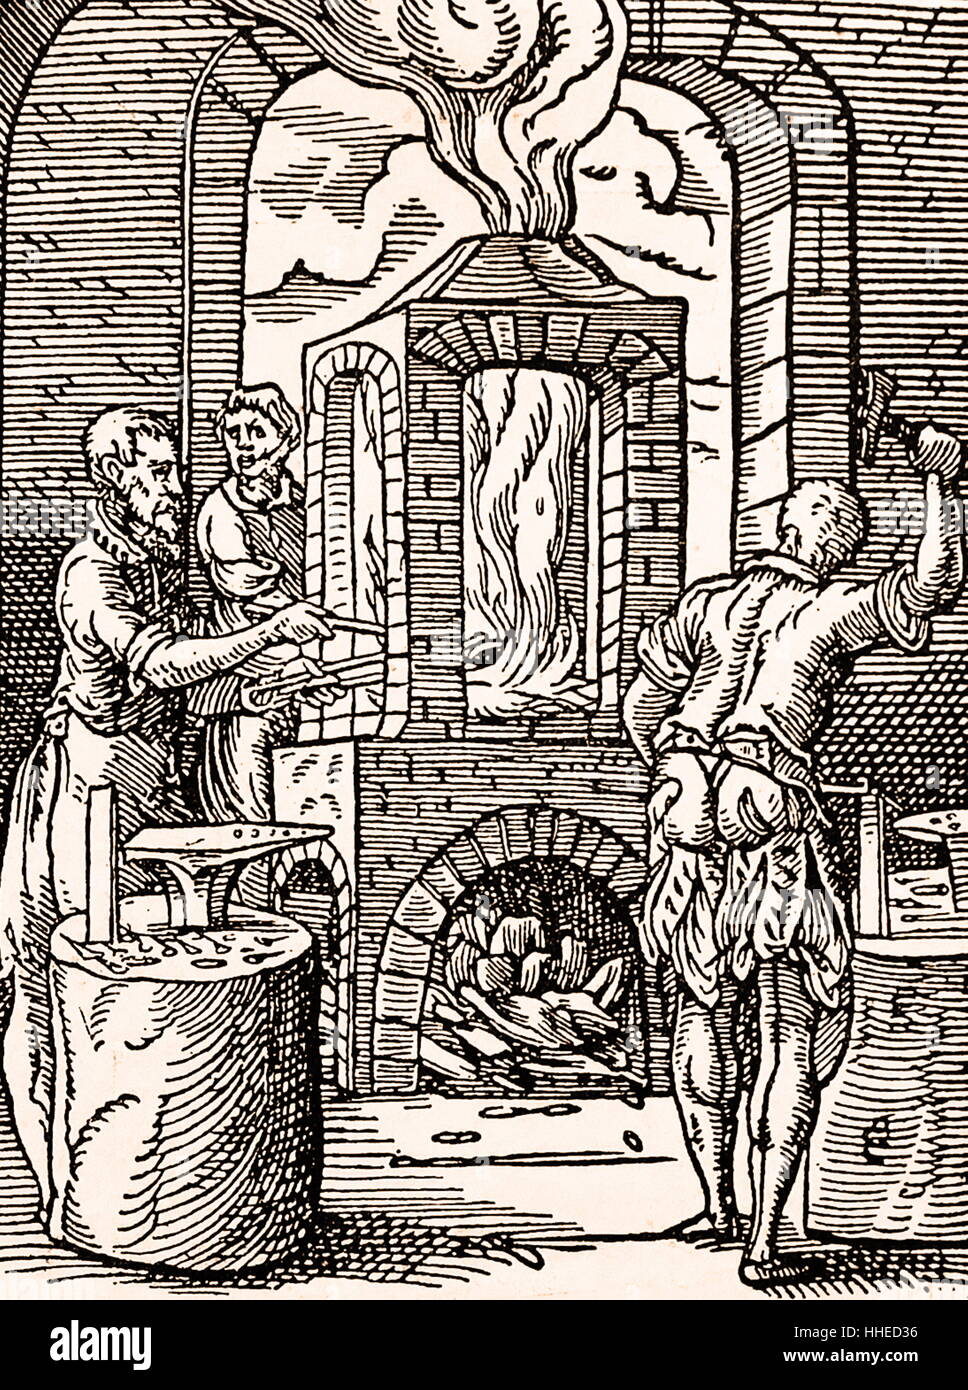 Nail makers workshop (Flemish) 16th century woodcut by Jost Amman - Stock Image